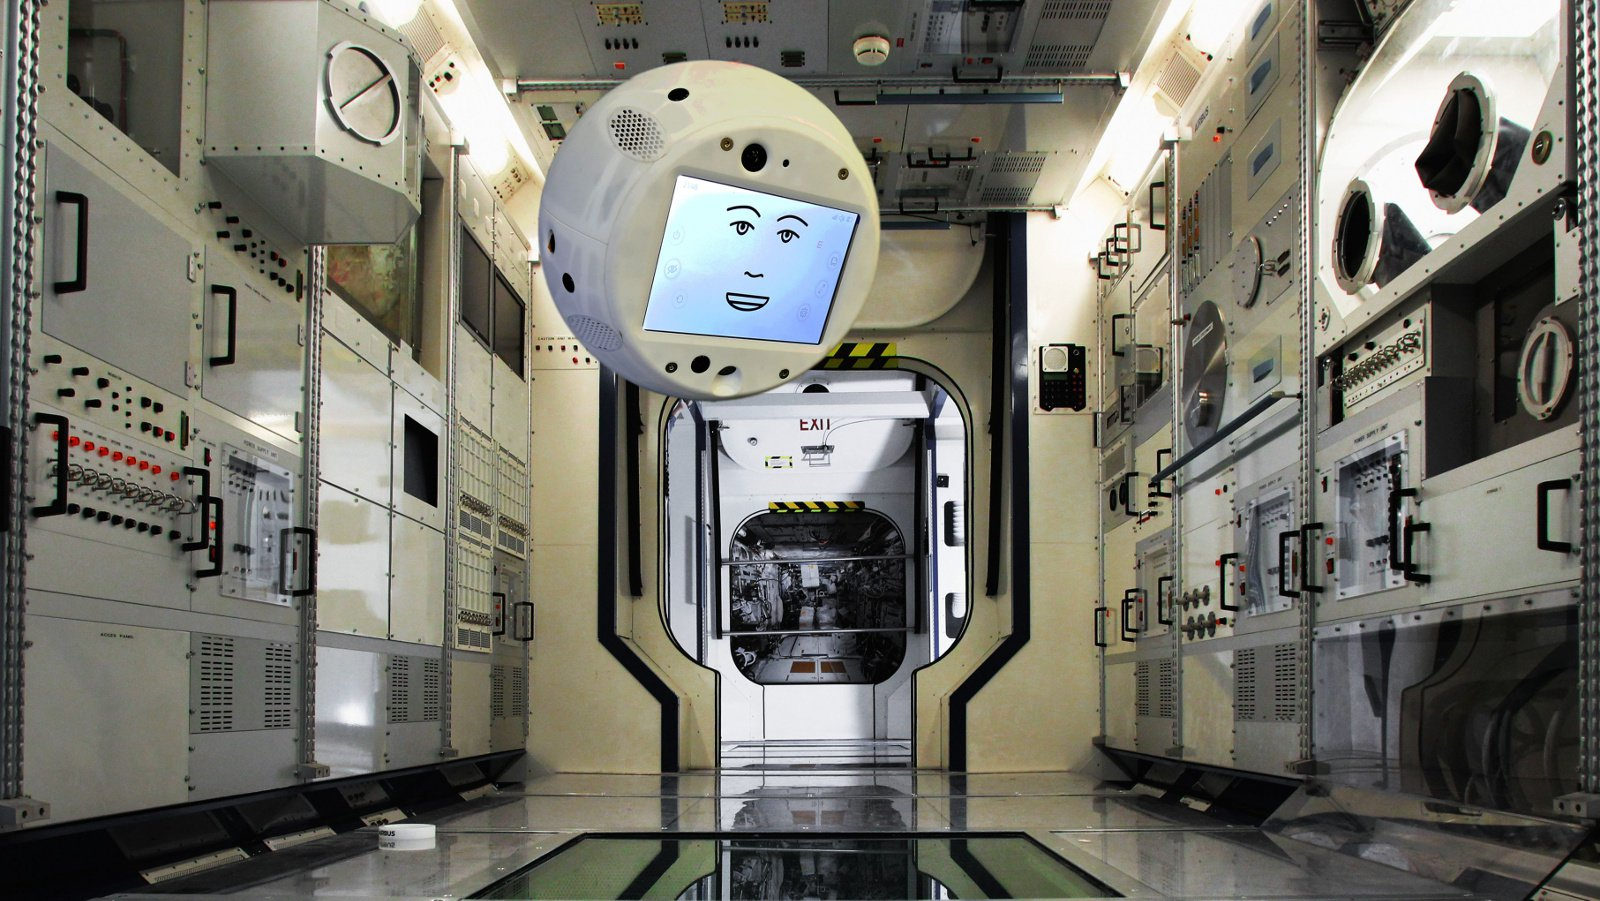 A new member of the crew of the ISS will be flying robot with artificial intelligence